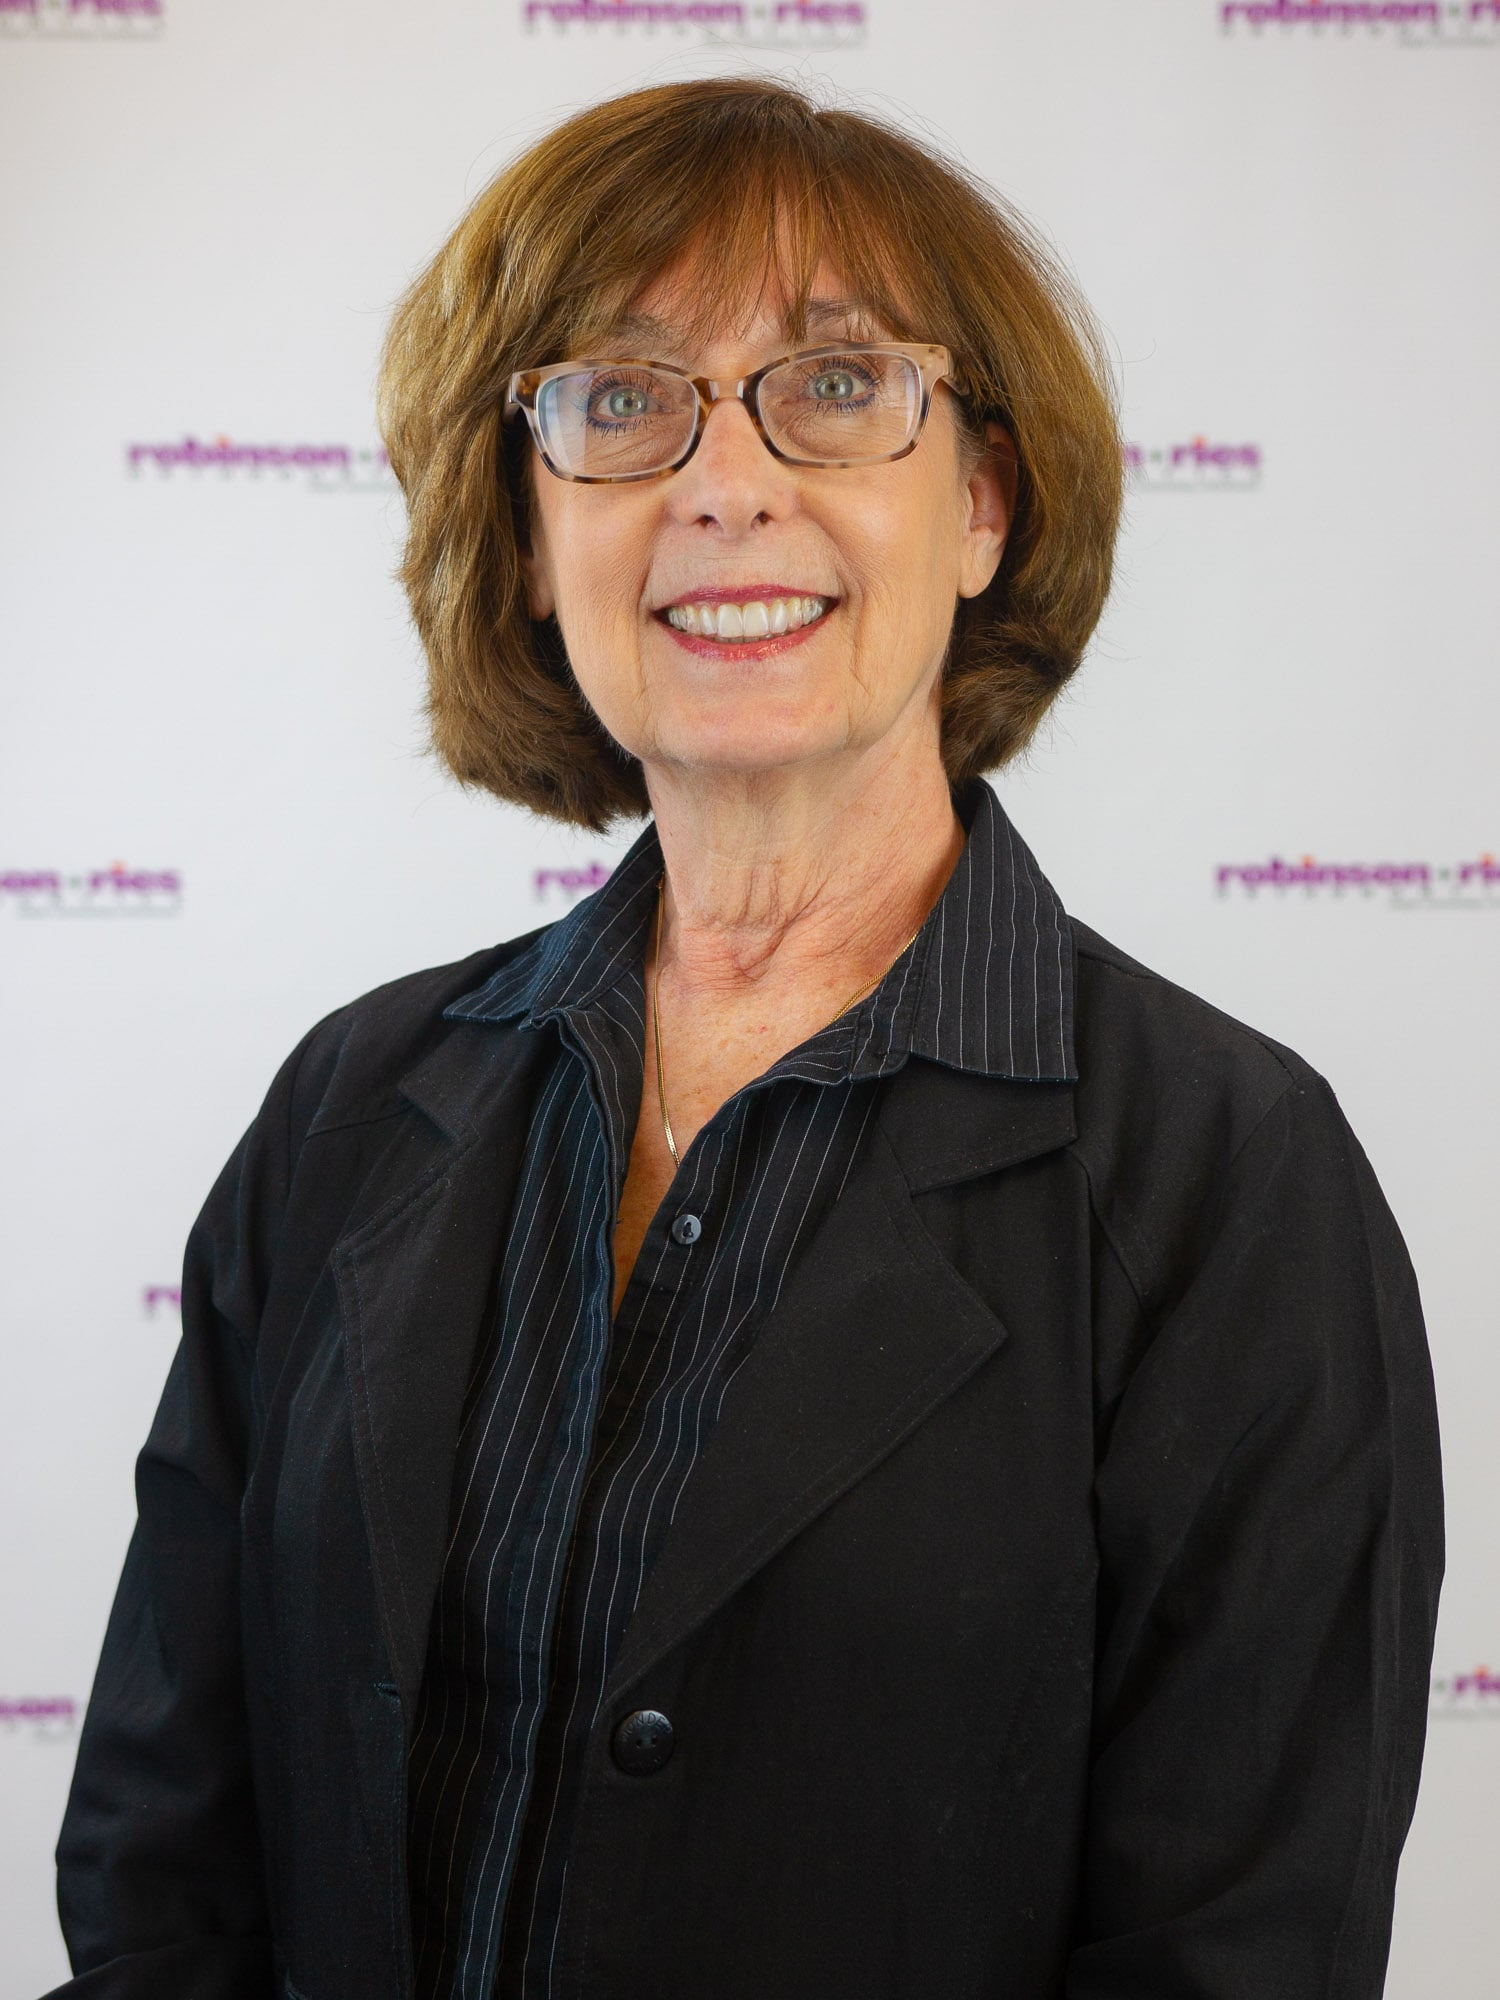 Denise, in a black and grey long sleeve shirt with a white background.